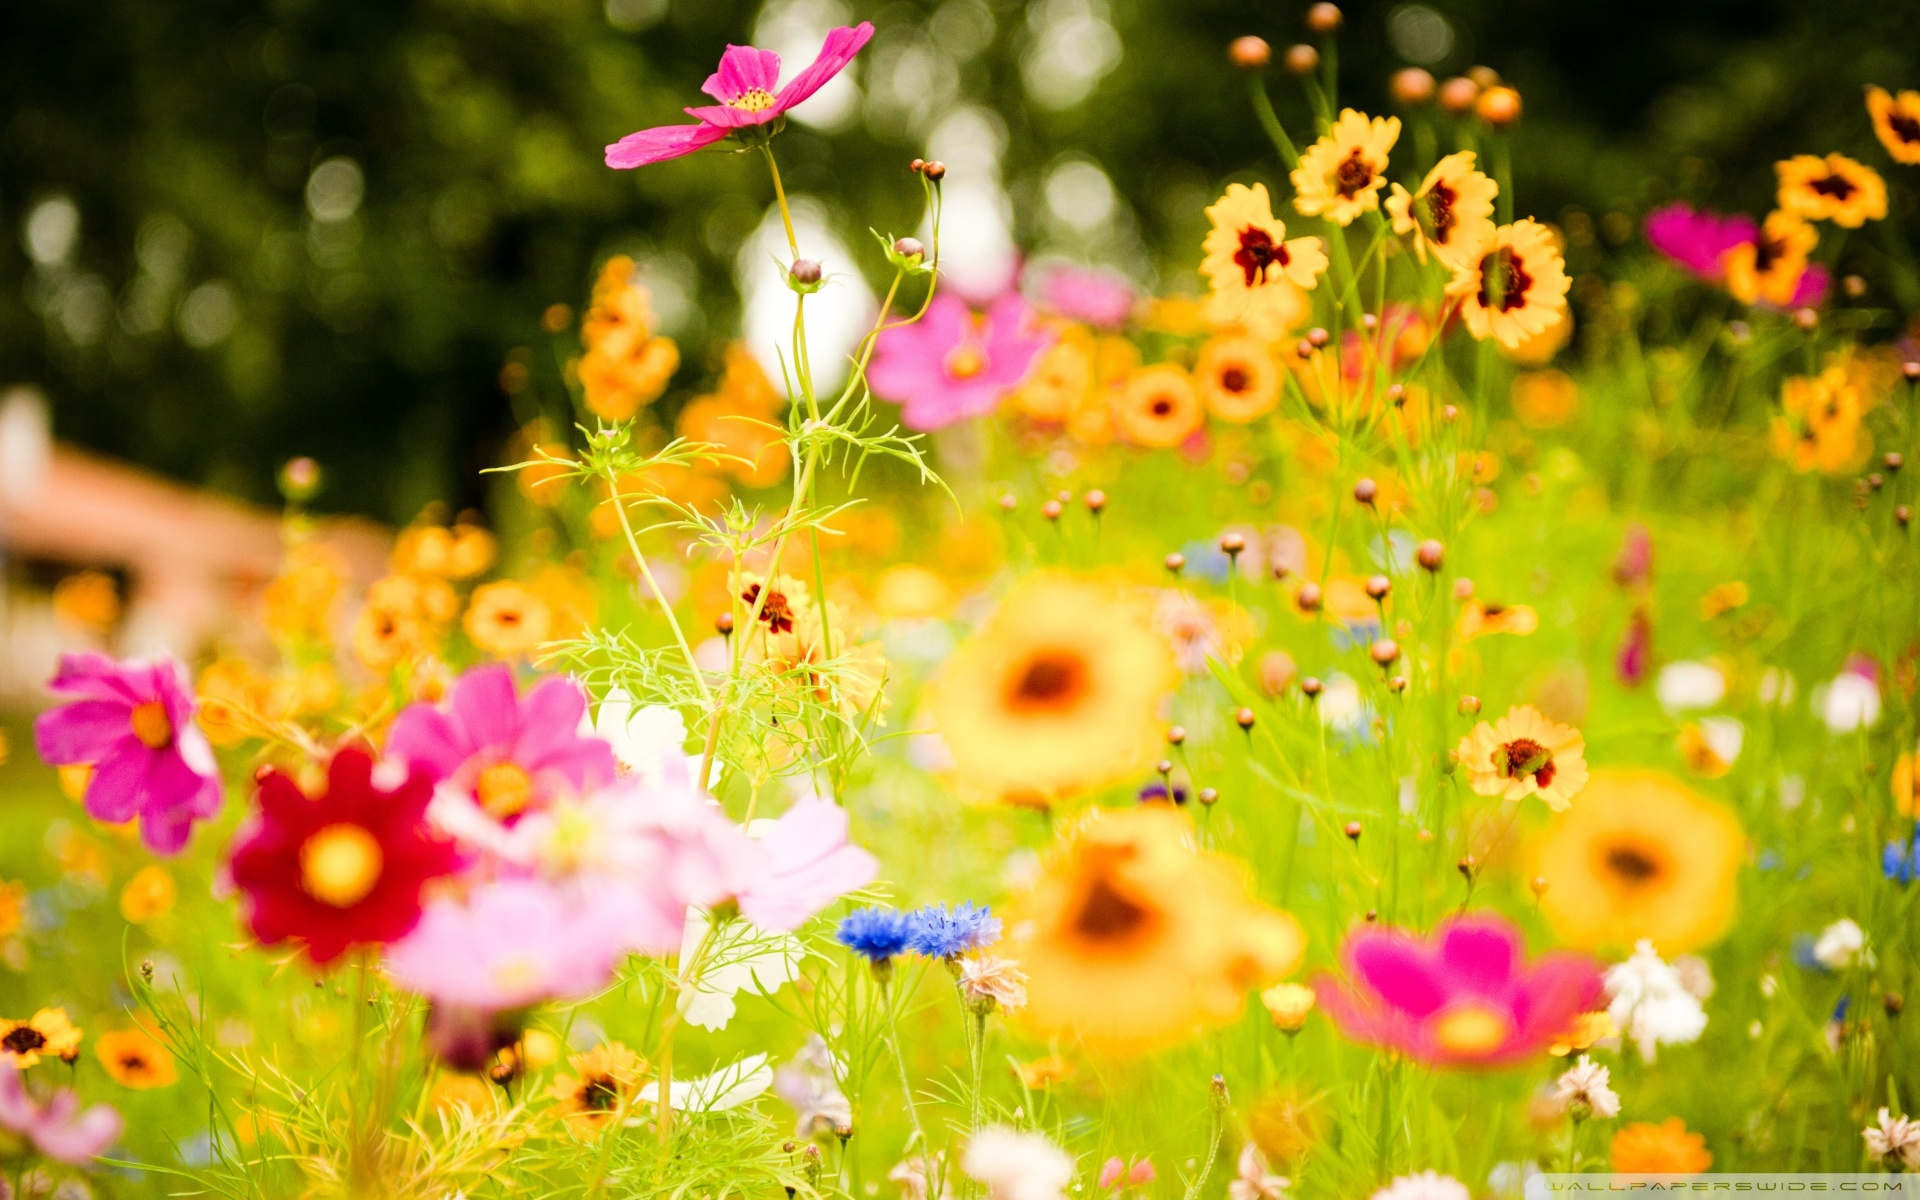 HD Quality Summer Flowers Desktop Background 2 Wallpaper - SiWallpaper 5501